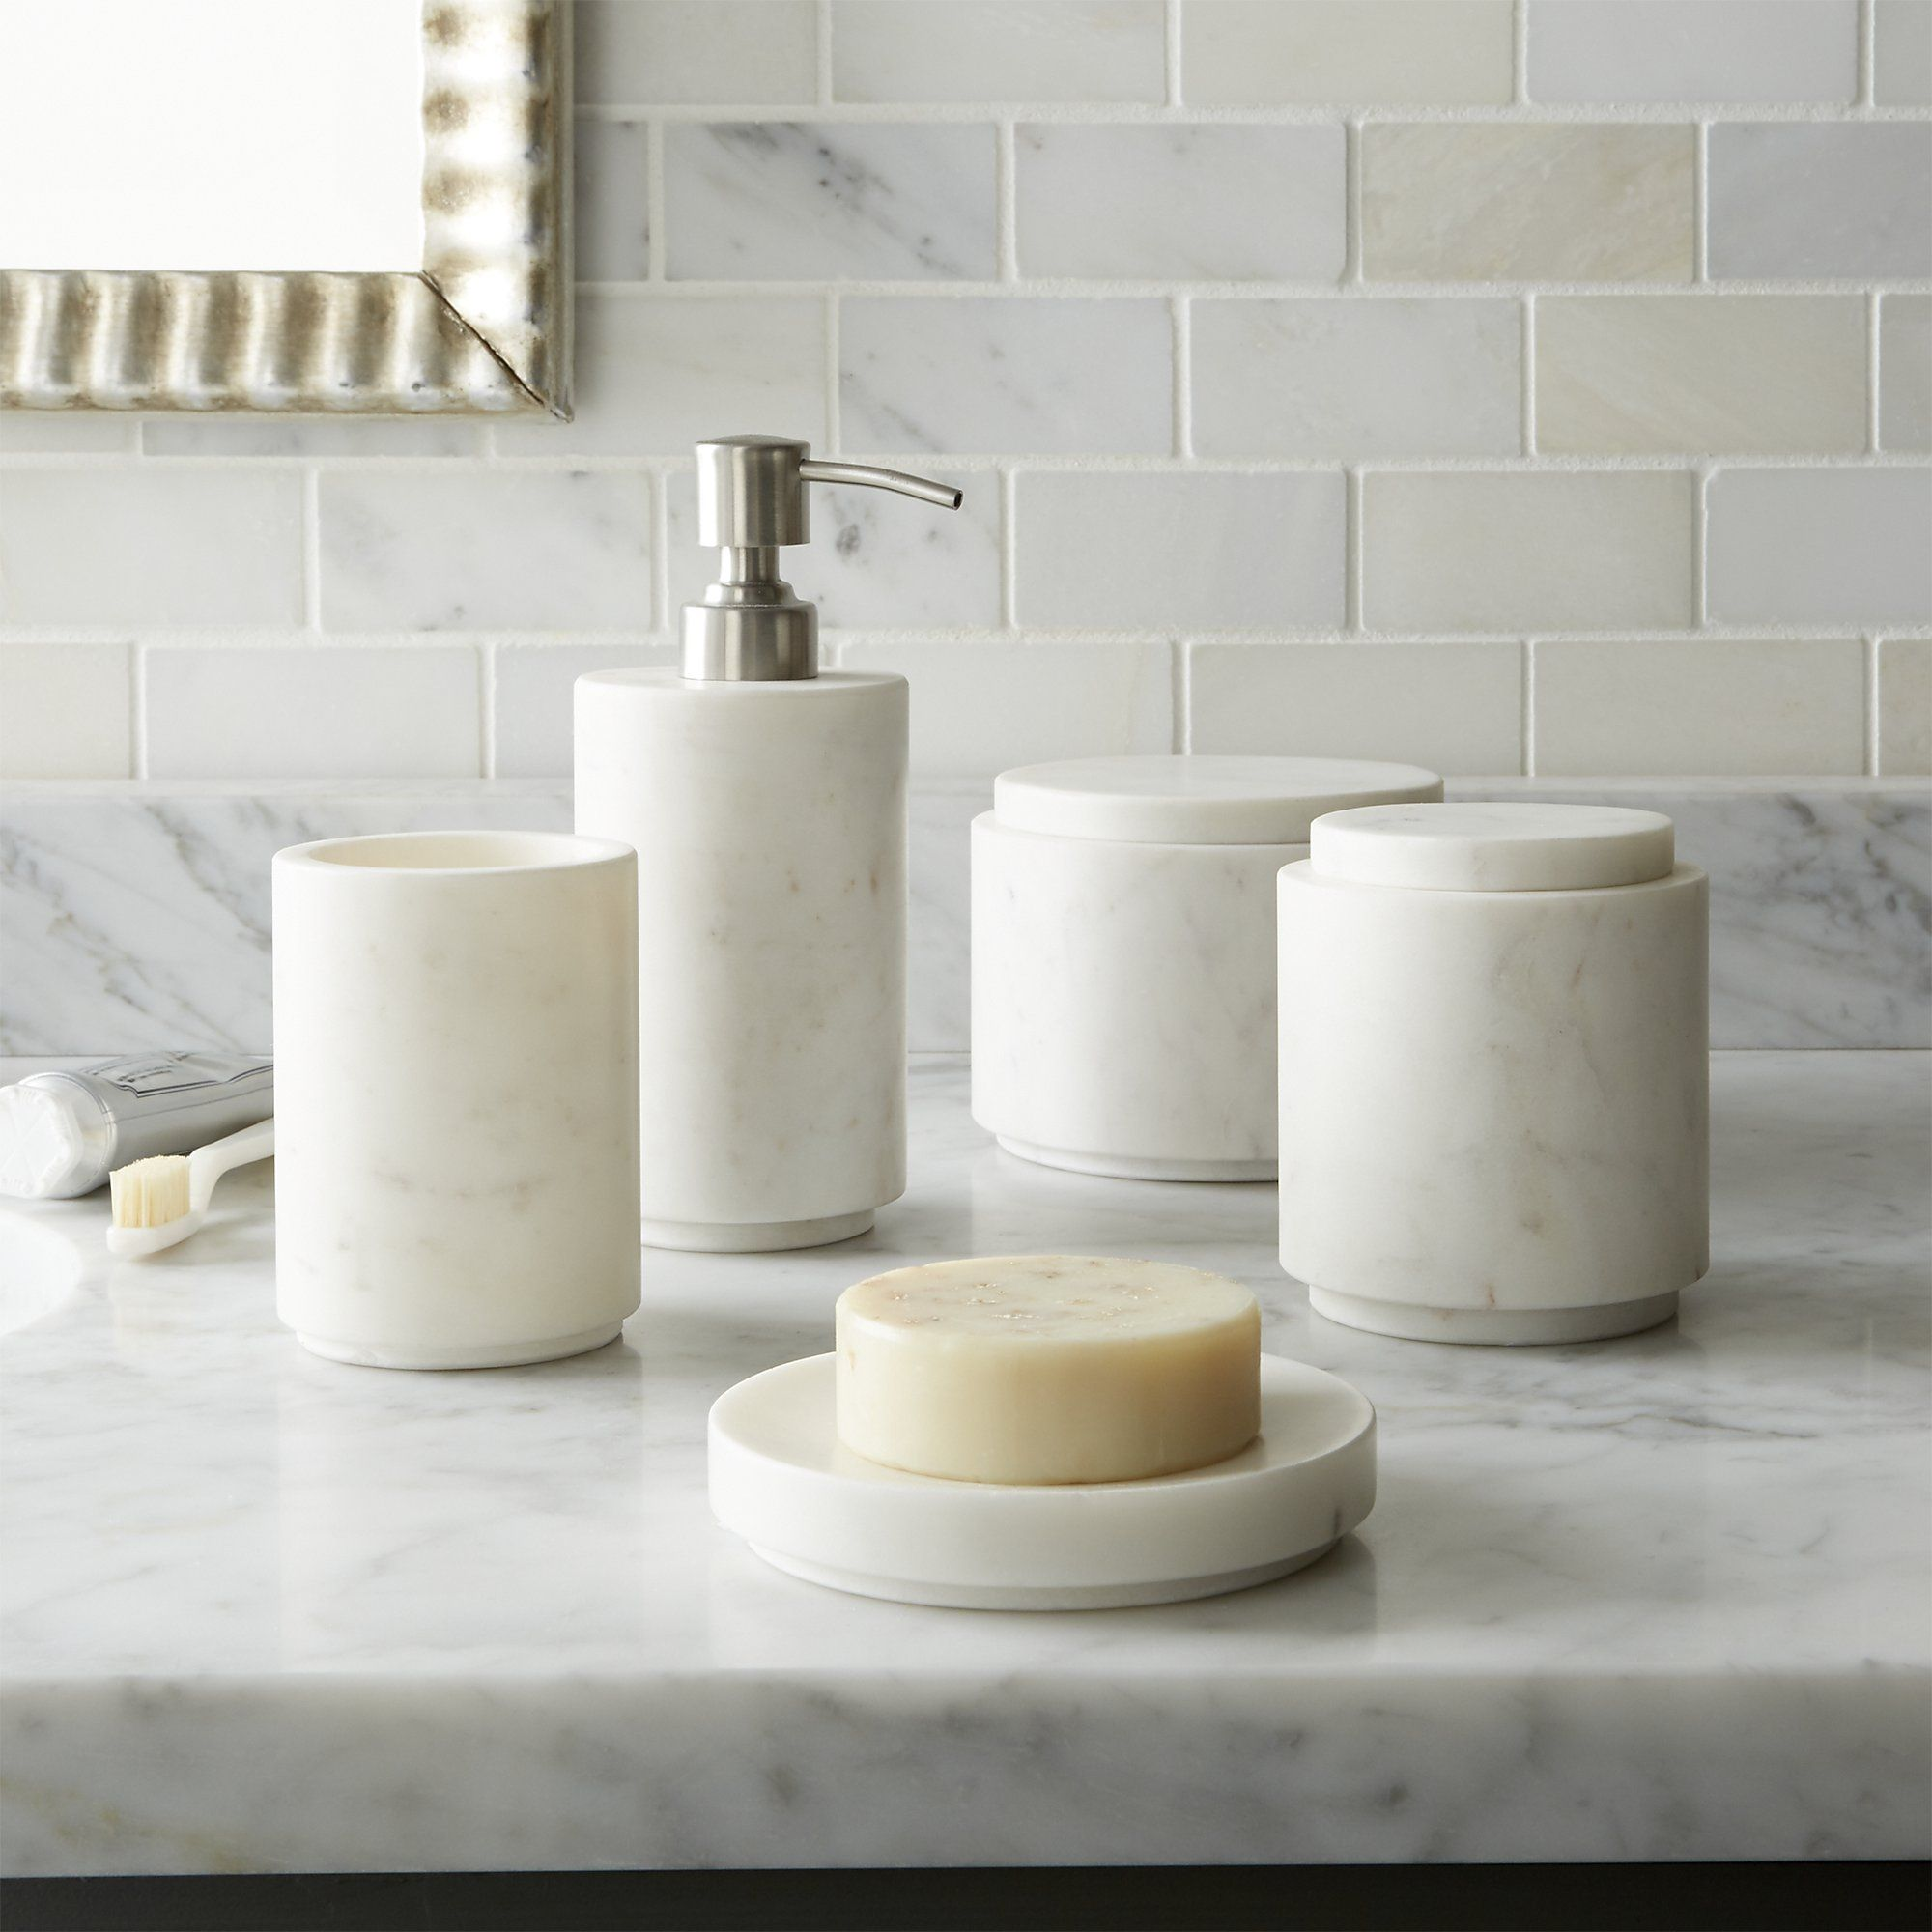 Graydon Marble Bath Accessories | Bath accessories, Crates and Bath